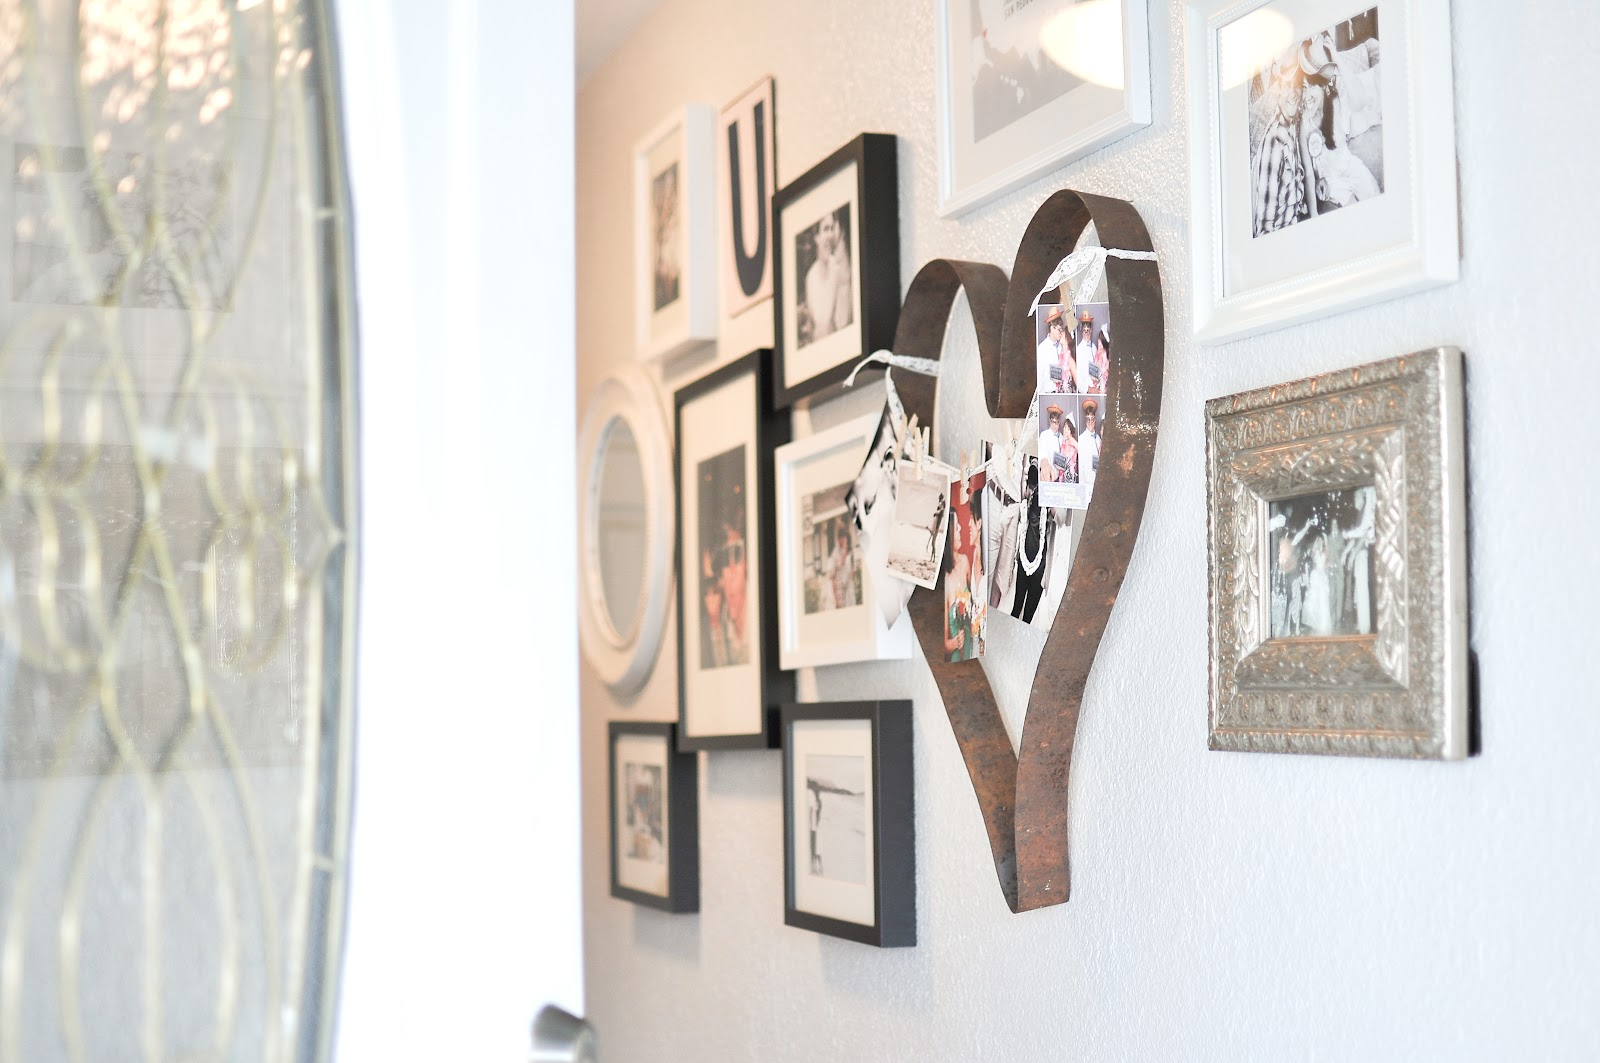 Entryway Wall Decor amazing entryway wall decor images - home decorating ideas and